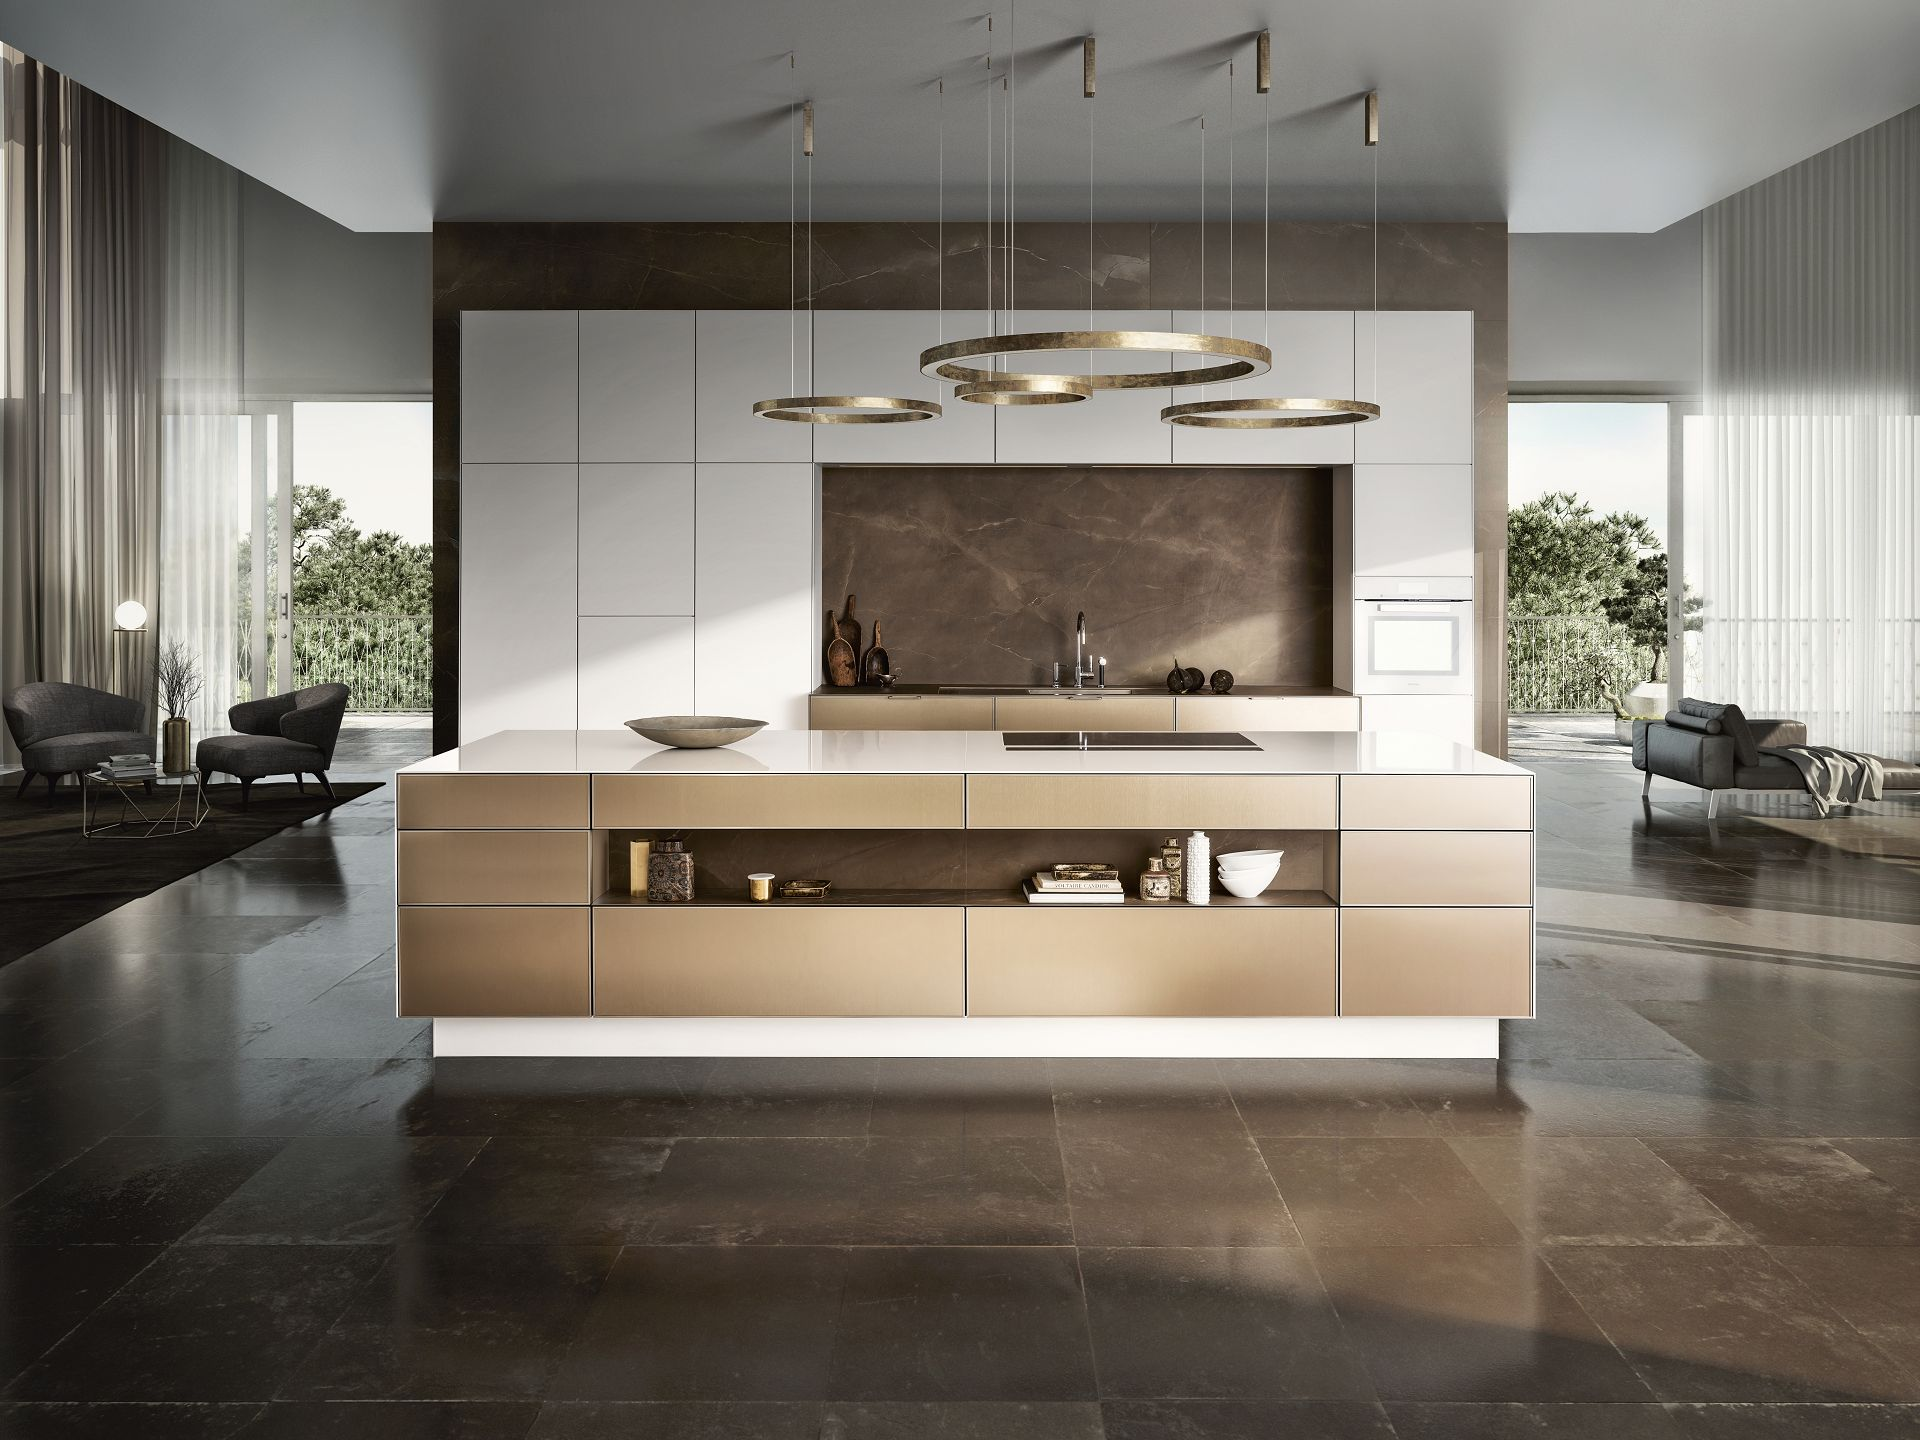 Kücheninsel siematic minimalistisches küchendesign maximale perfektion